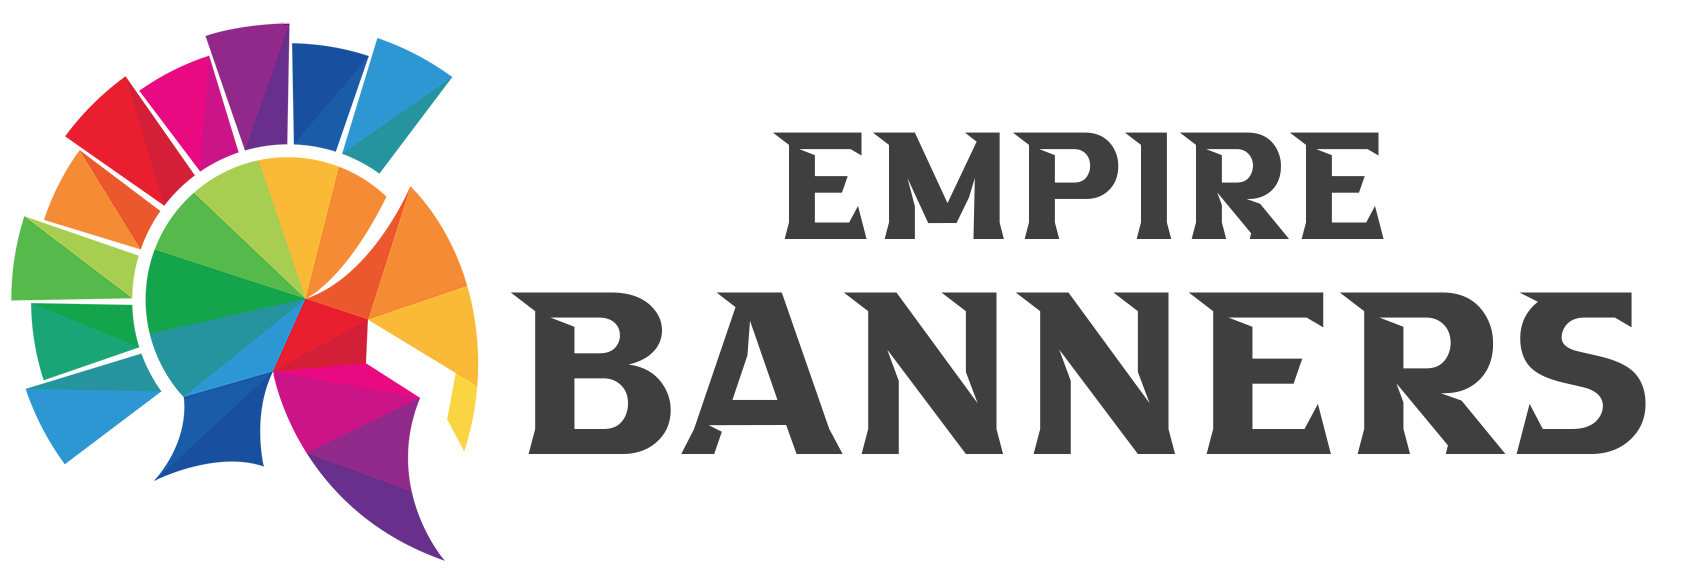 Empire Banners - Banners